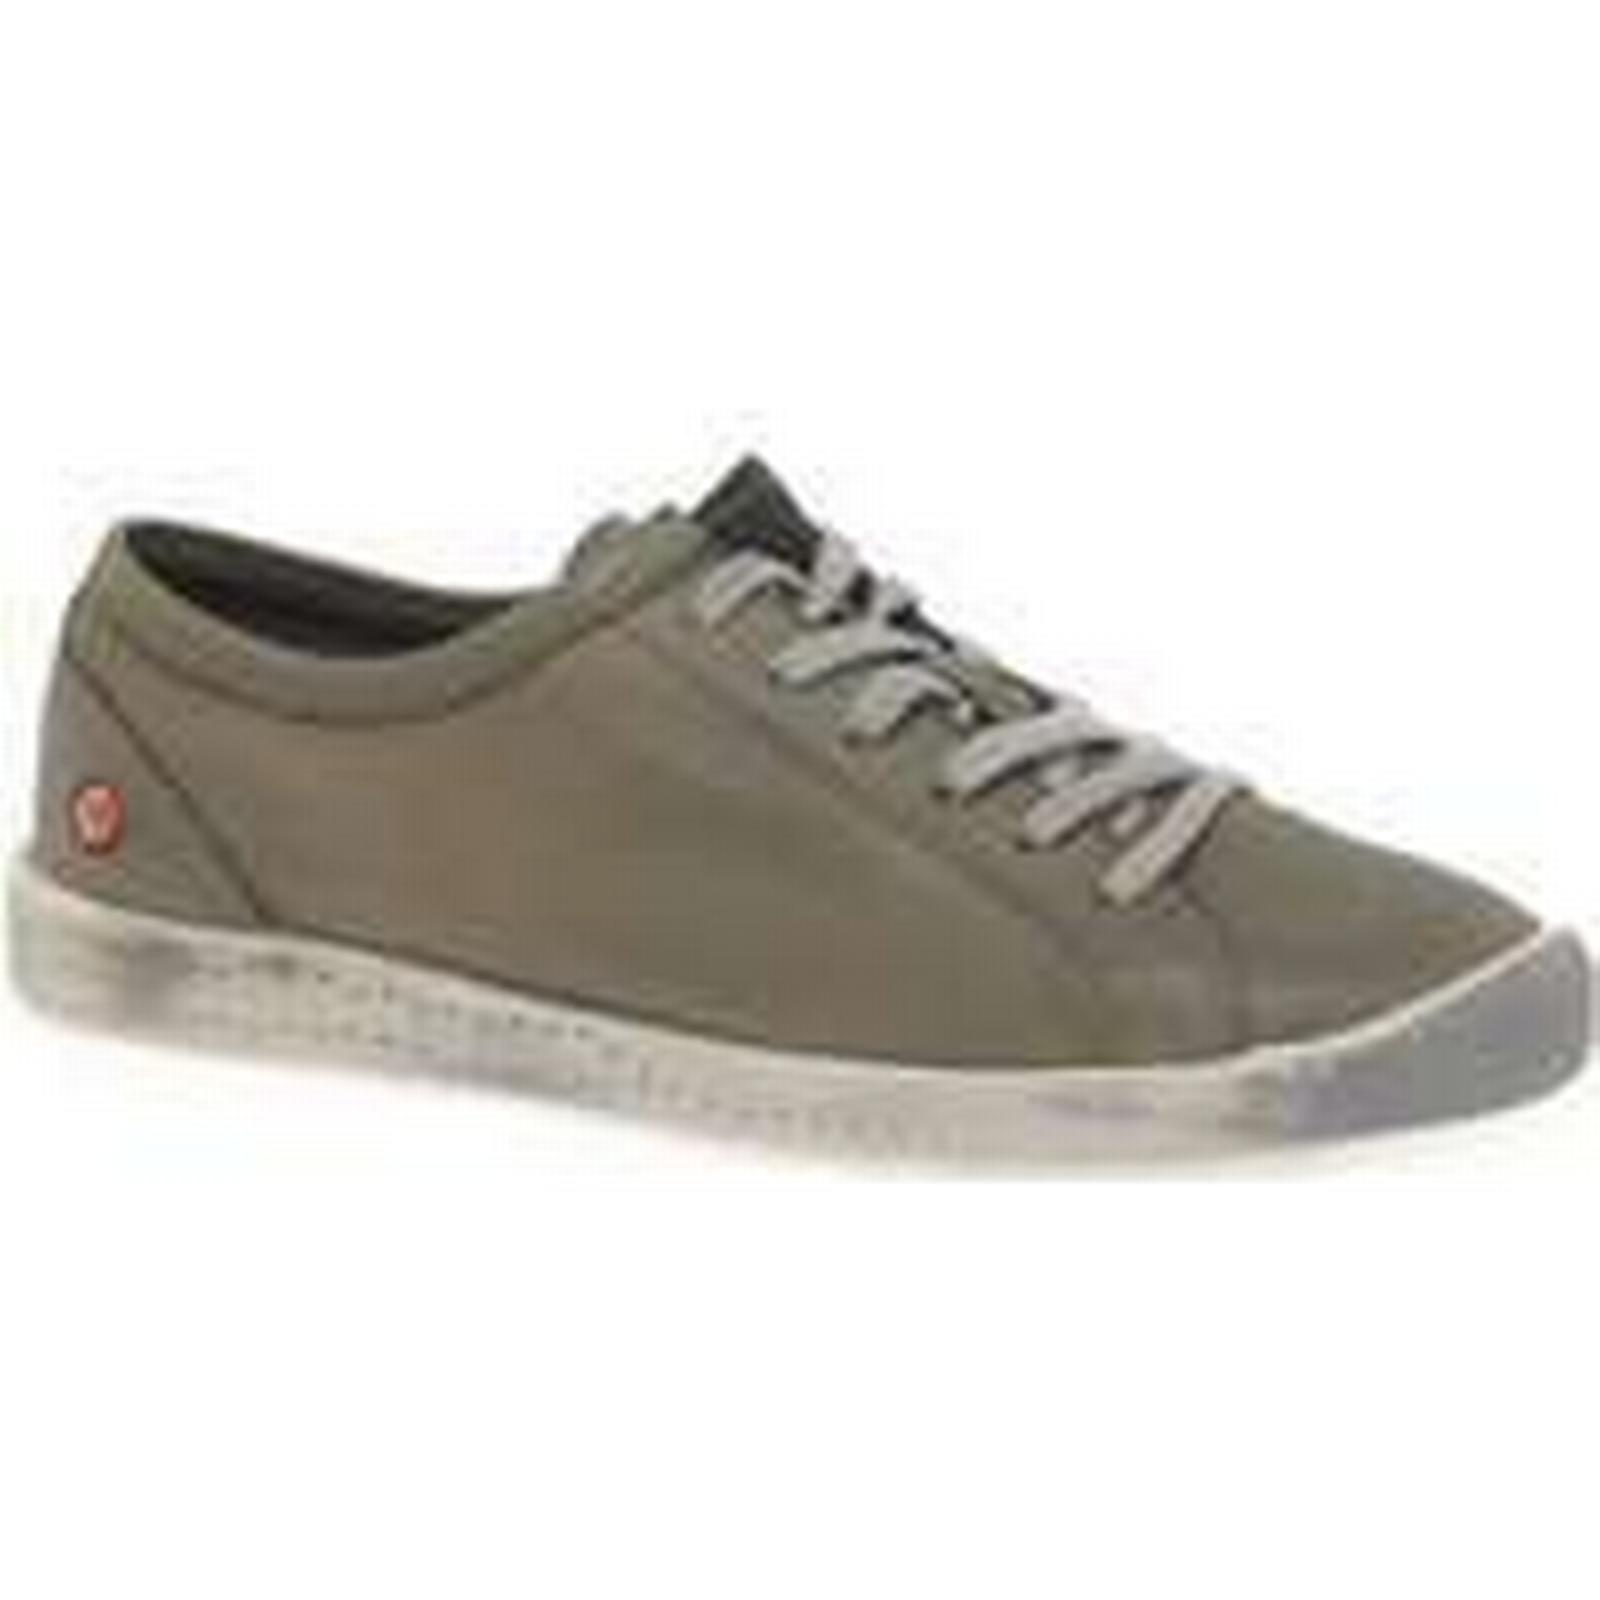 Spartoo.co.uk women's Softinos Isla Womens Casual Shoes women's Spartoo.co.uk Shoes (Trainers) in Beige 9215be